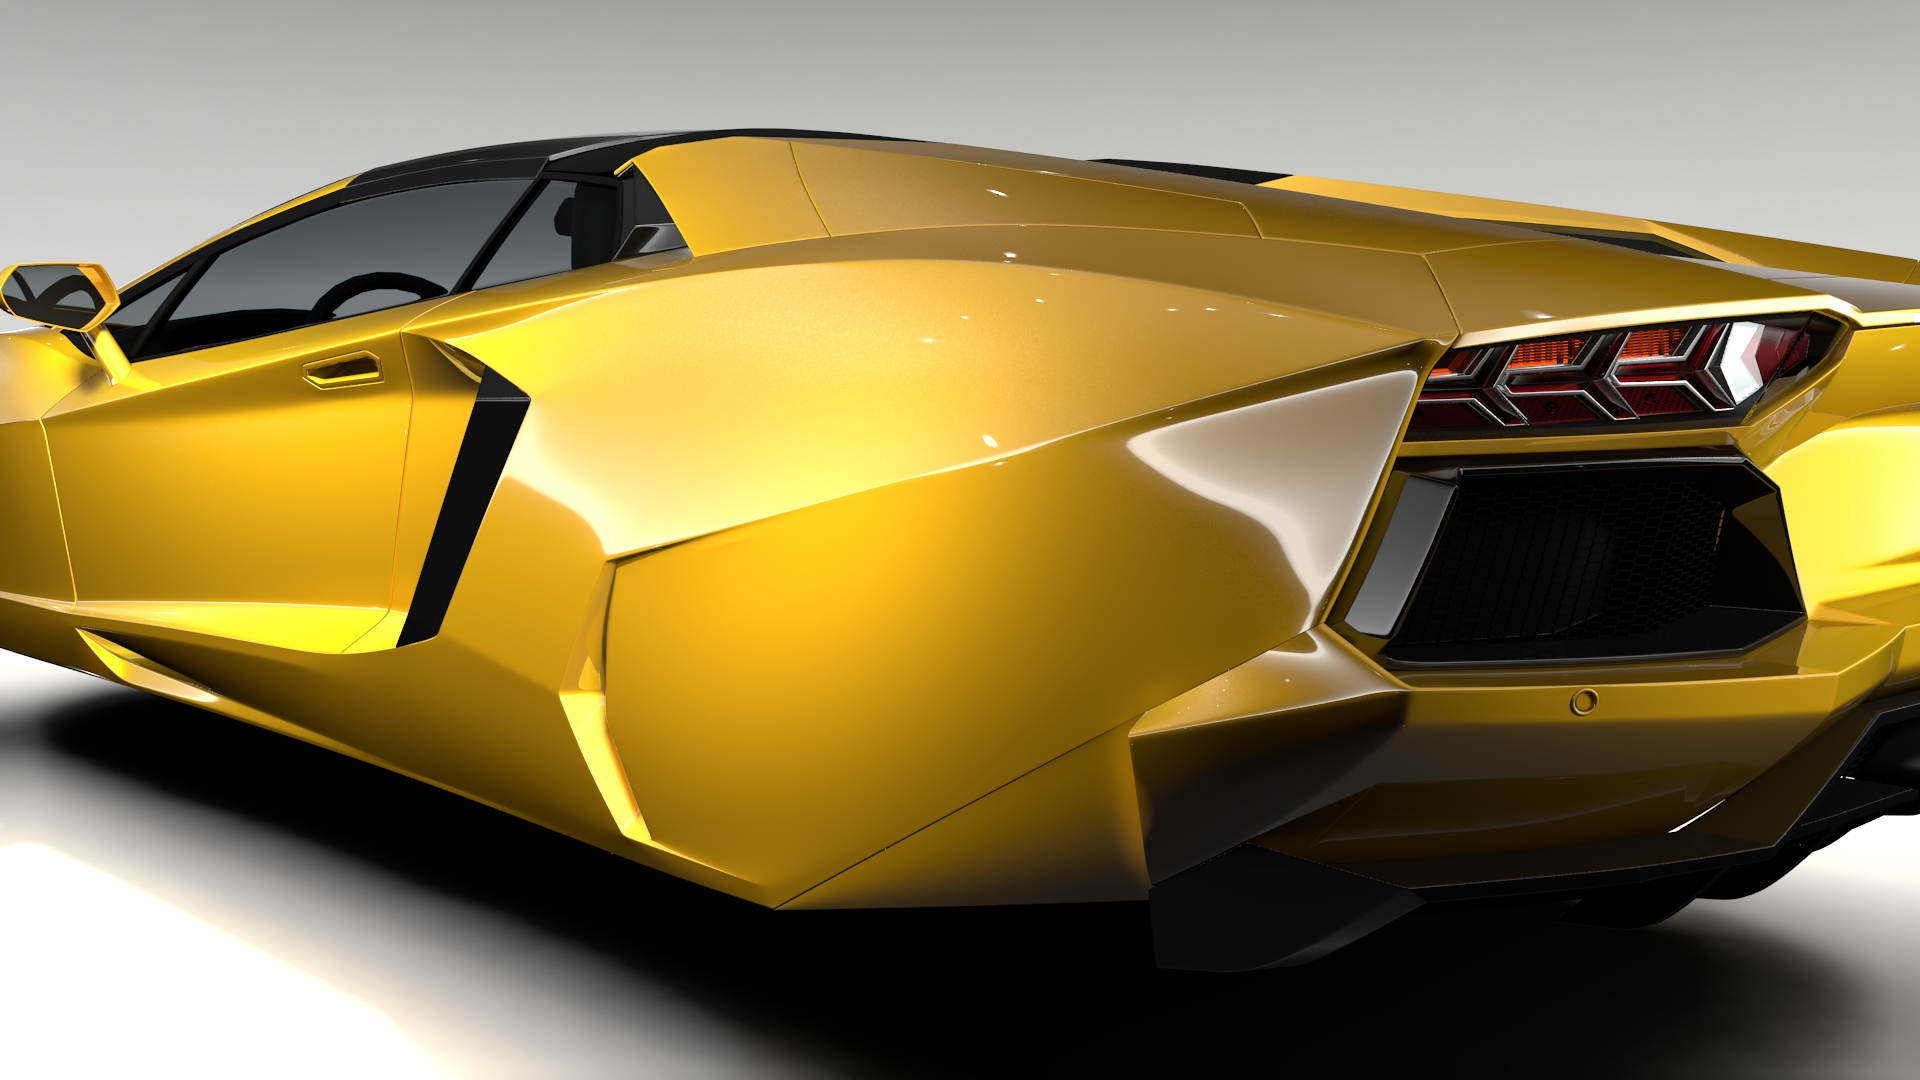 lamborghini 2017 models - photo #31